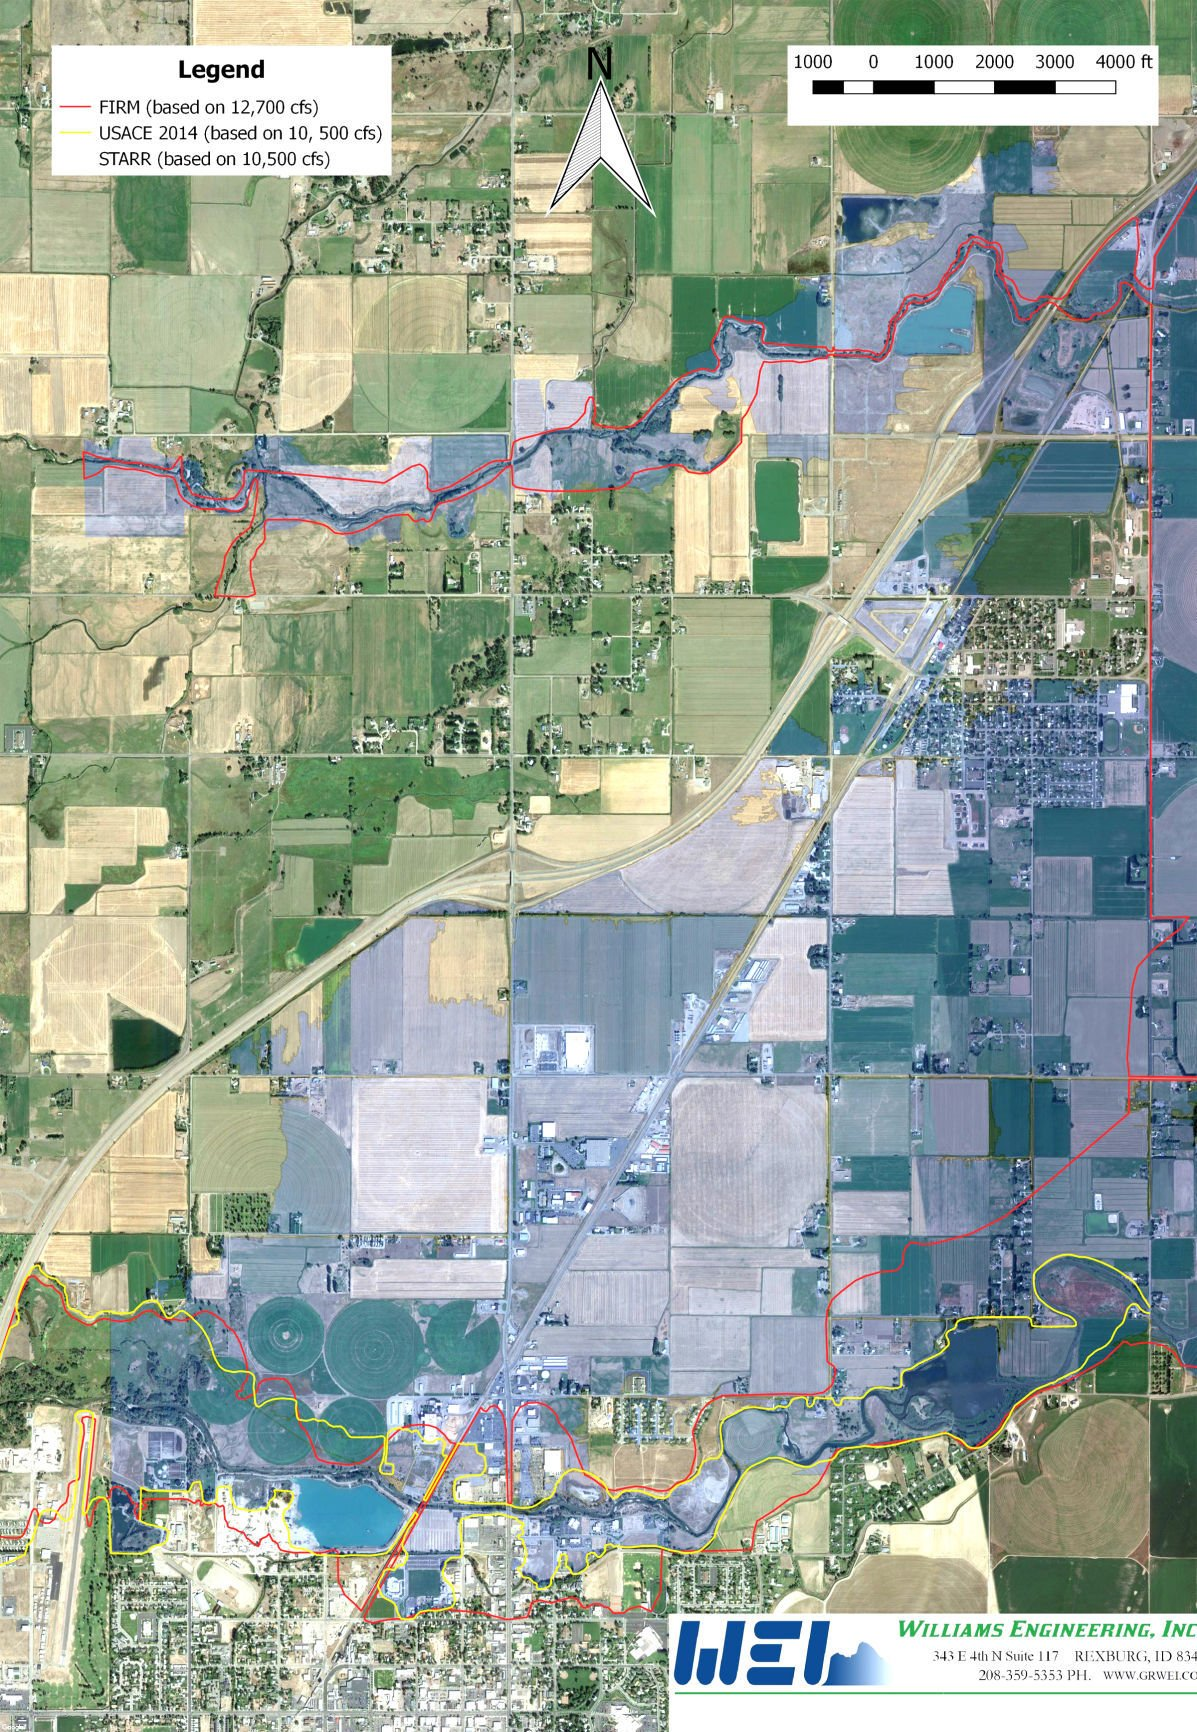 FEMA Plans Floodplain Expansion For Madison County Local News - Current fema flood maps